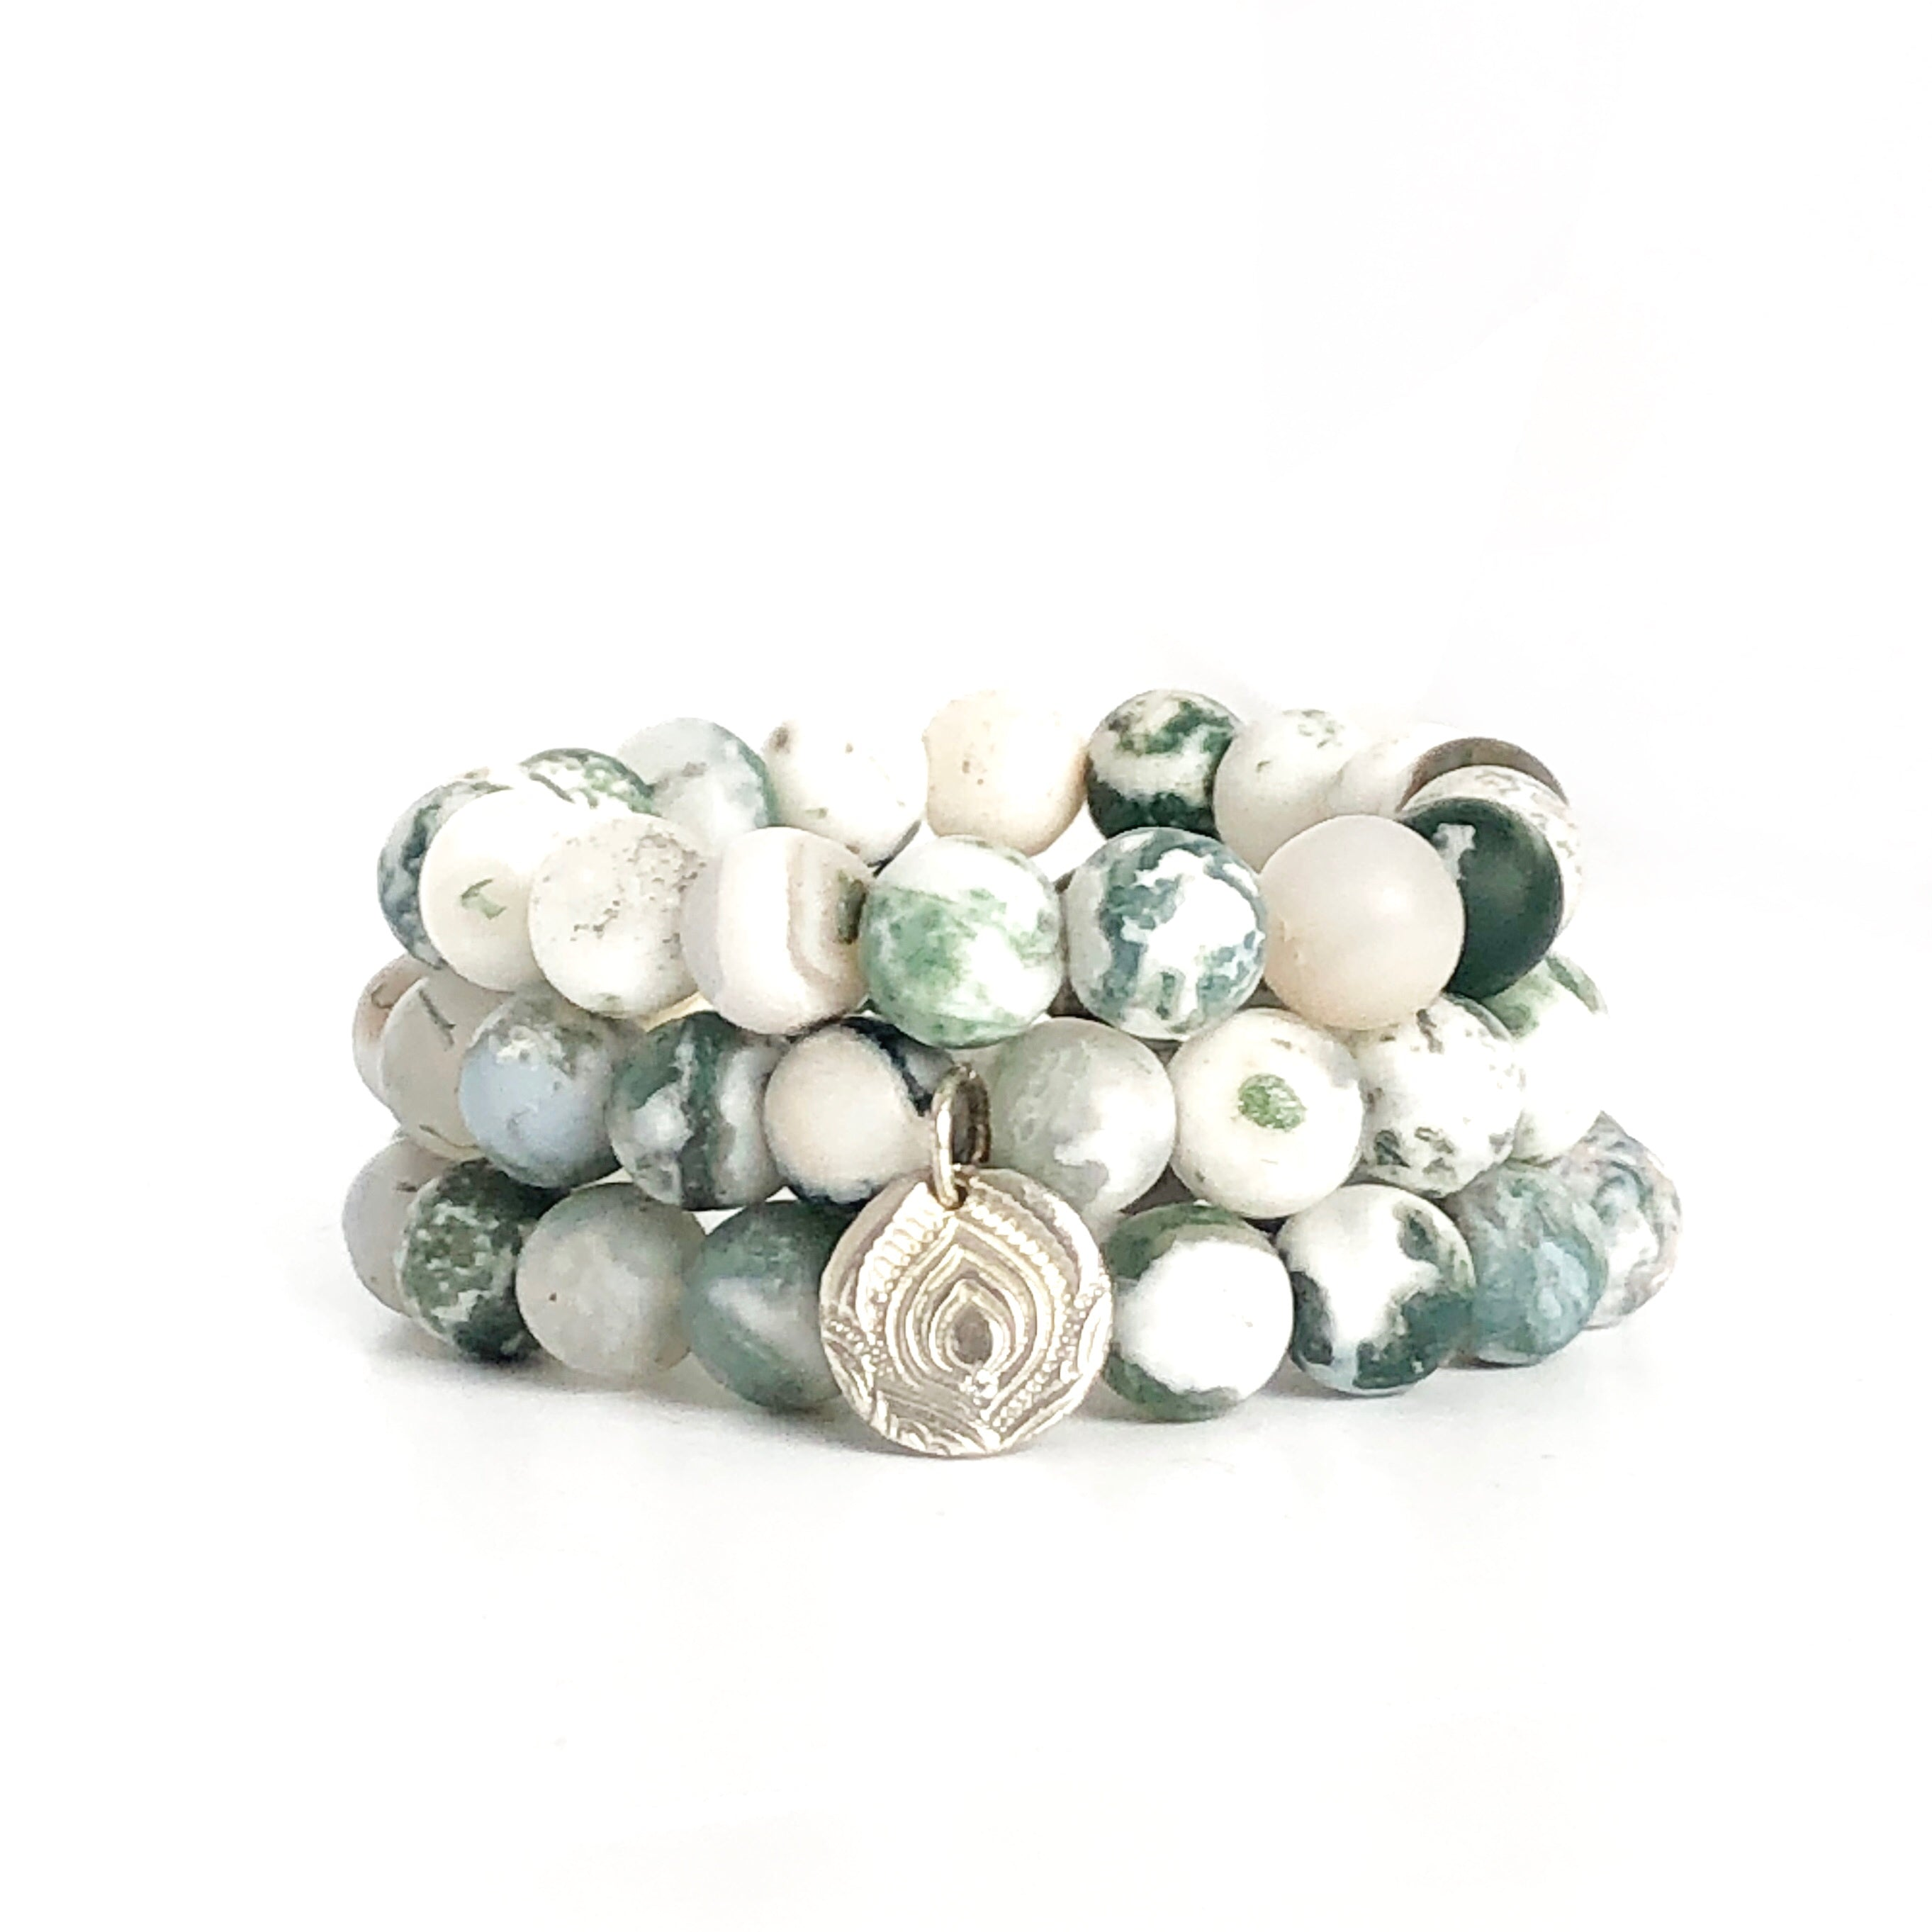 Green Tree Agate Beaded Bracelets, Set of 3 with Charm Silver